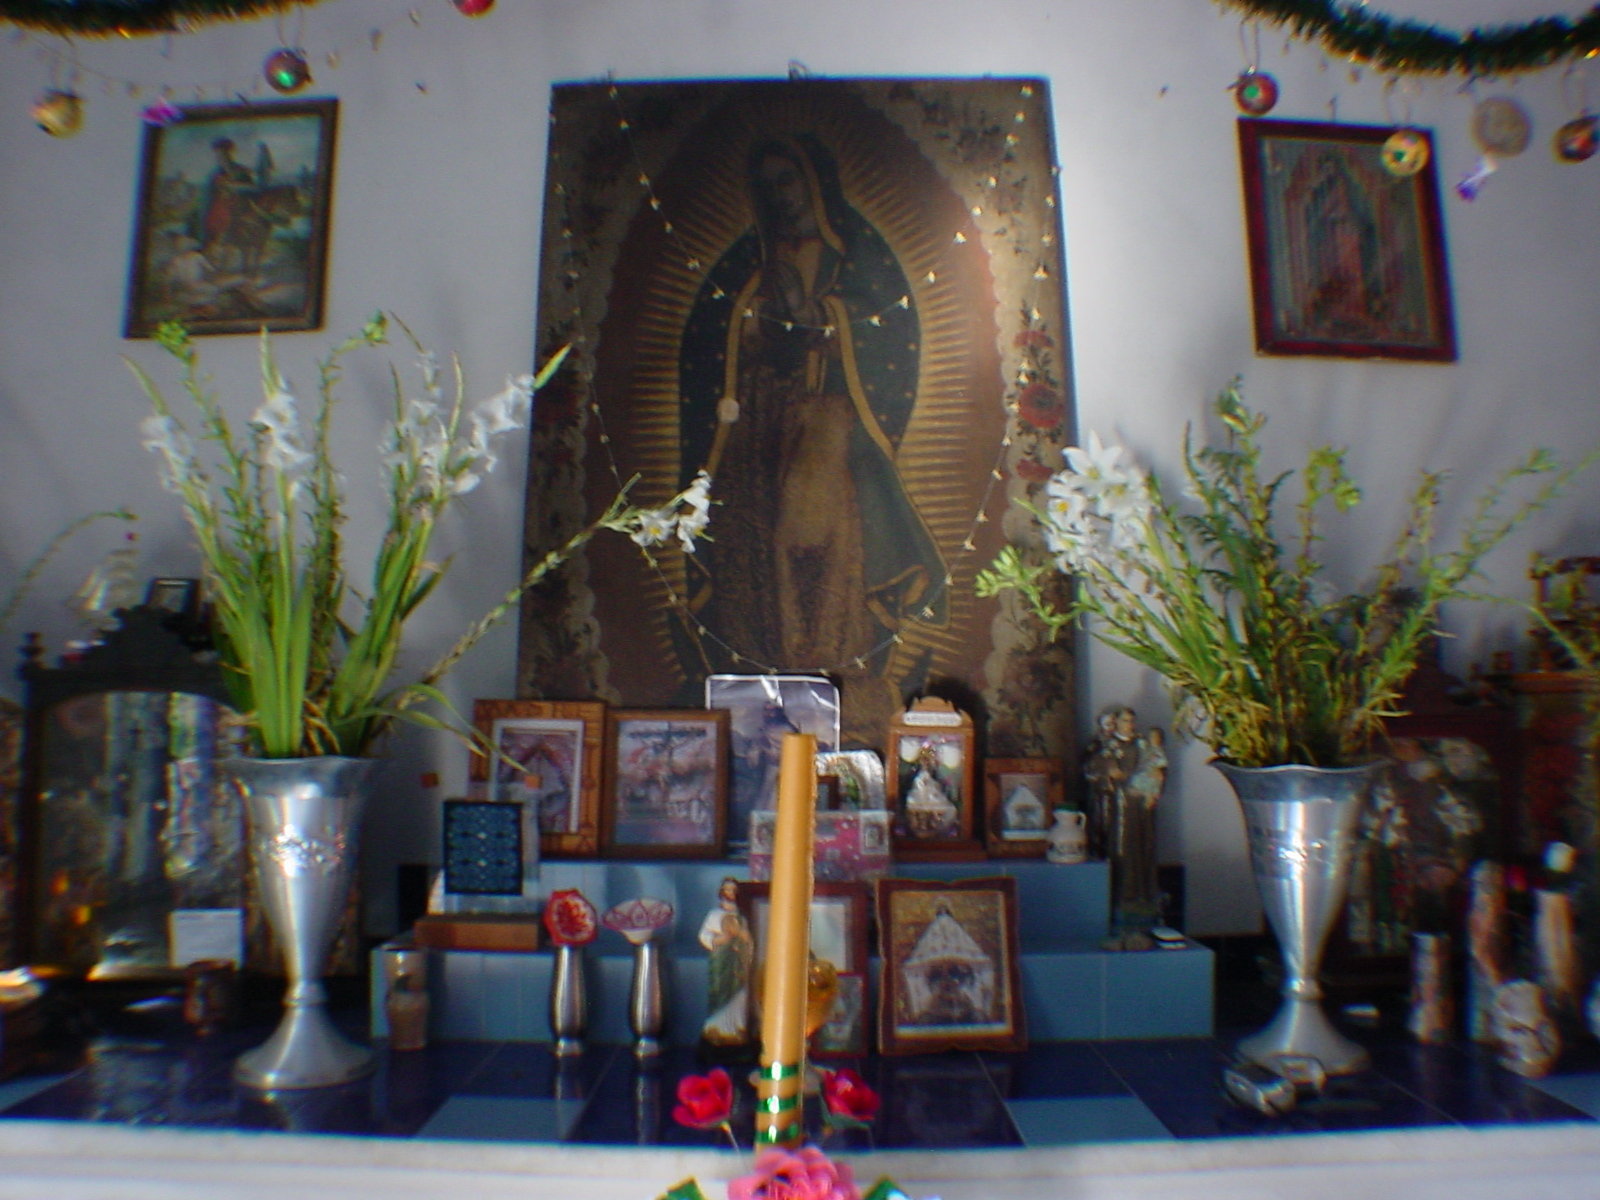 cholula_._teotitlan_014